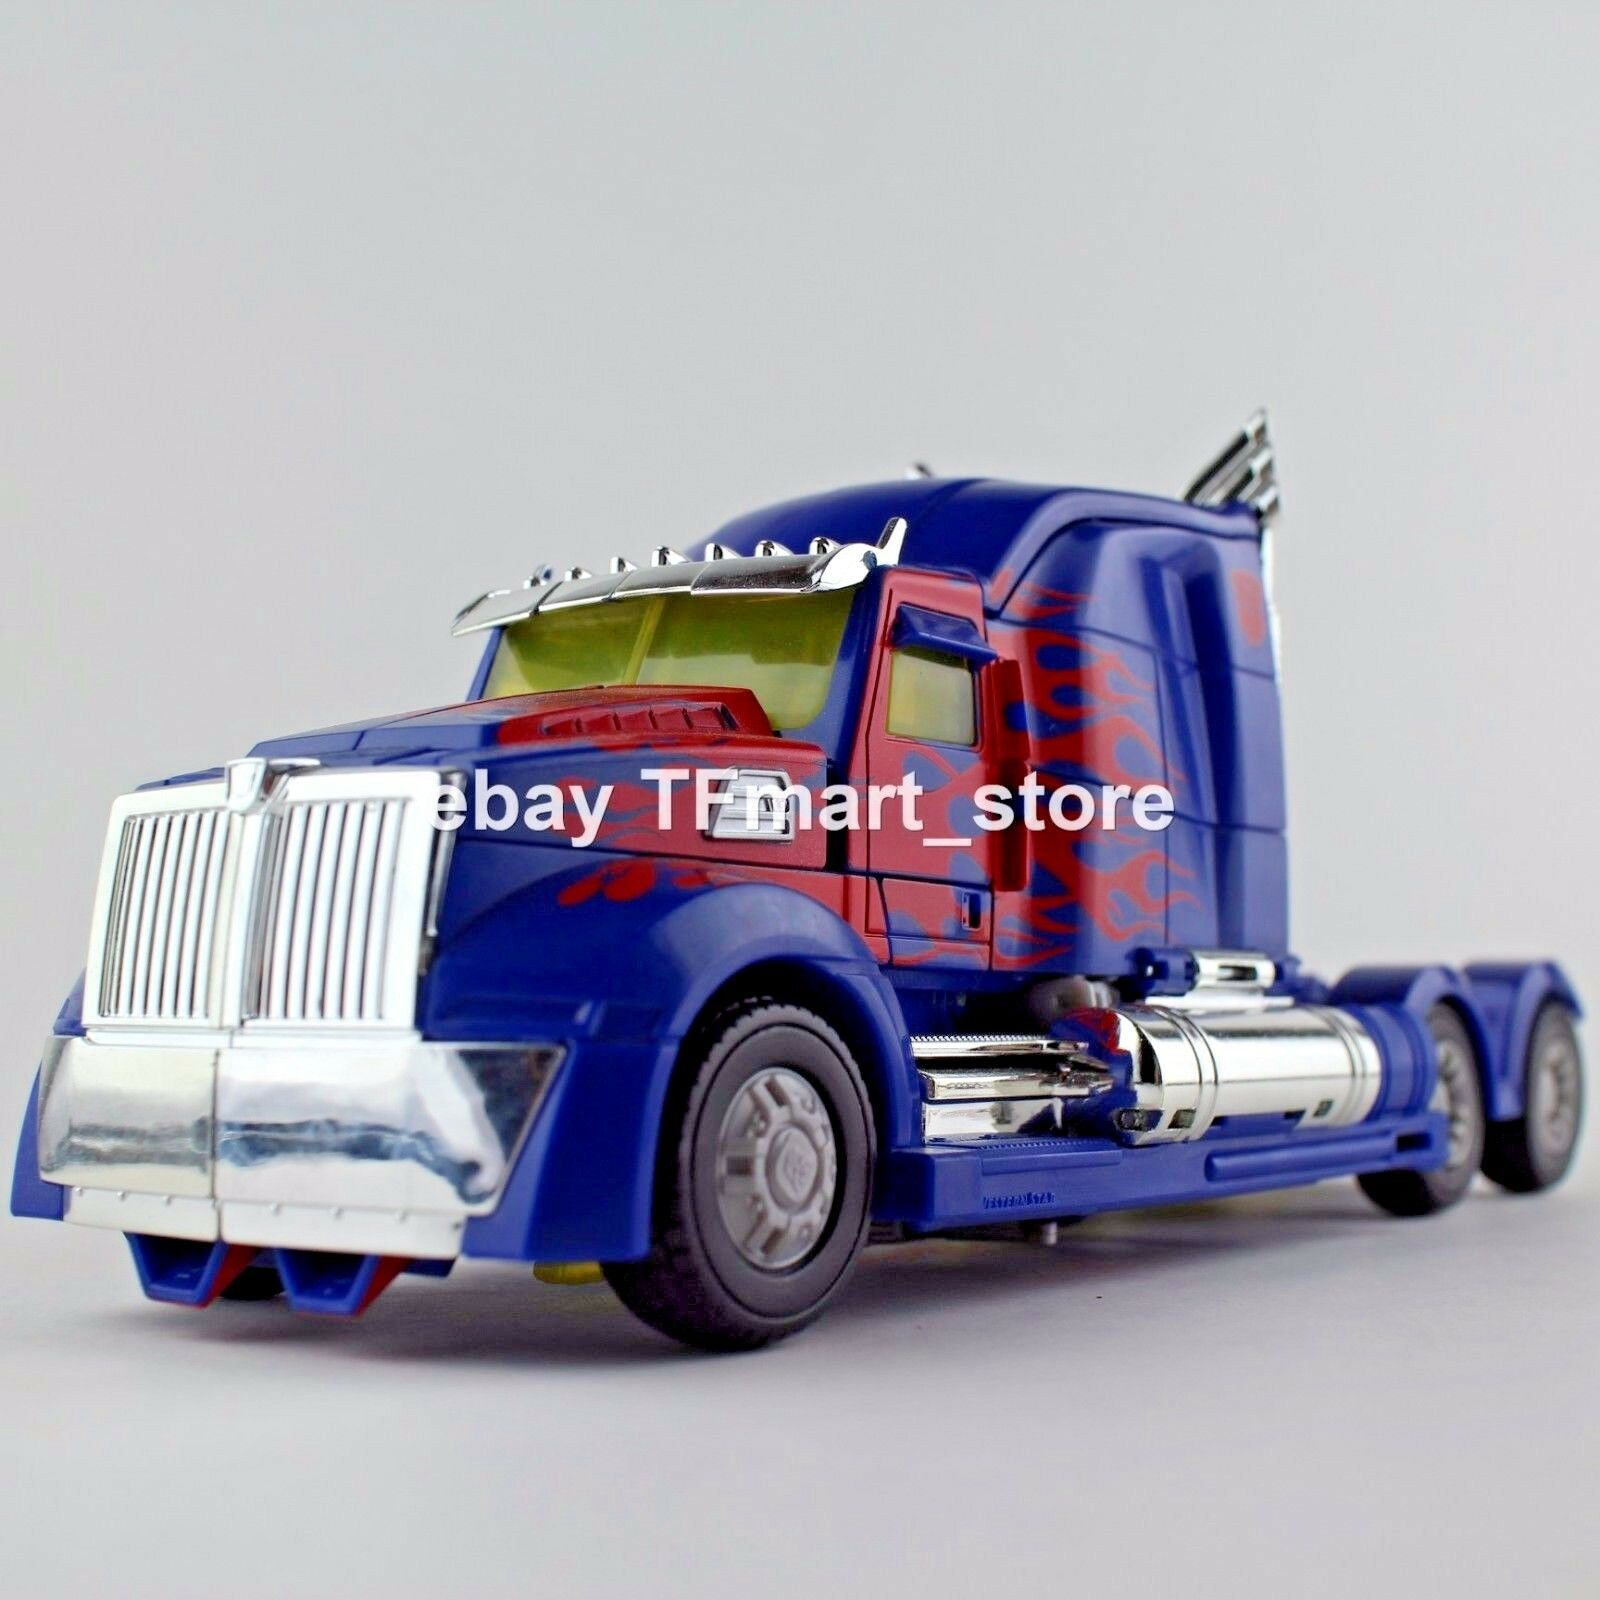 Transformers Movie Age of Extinction AOE Leader Optimus Prime by Hasbro